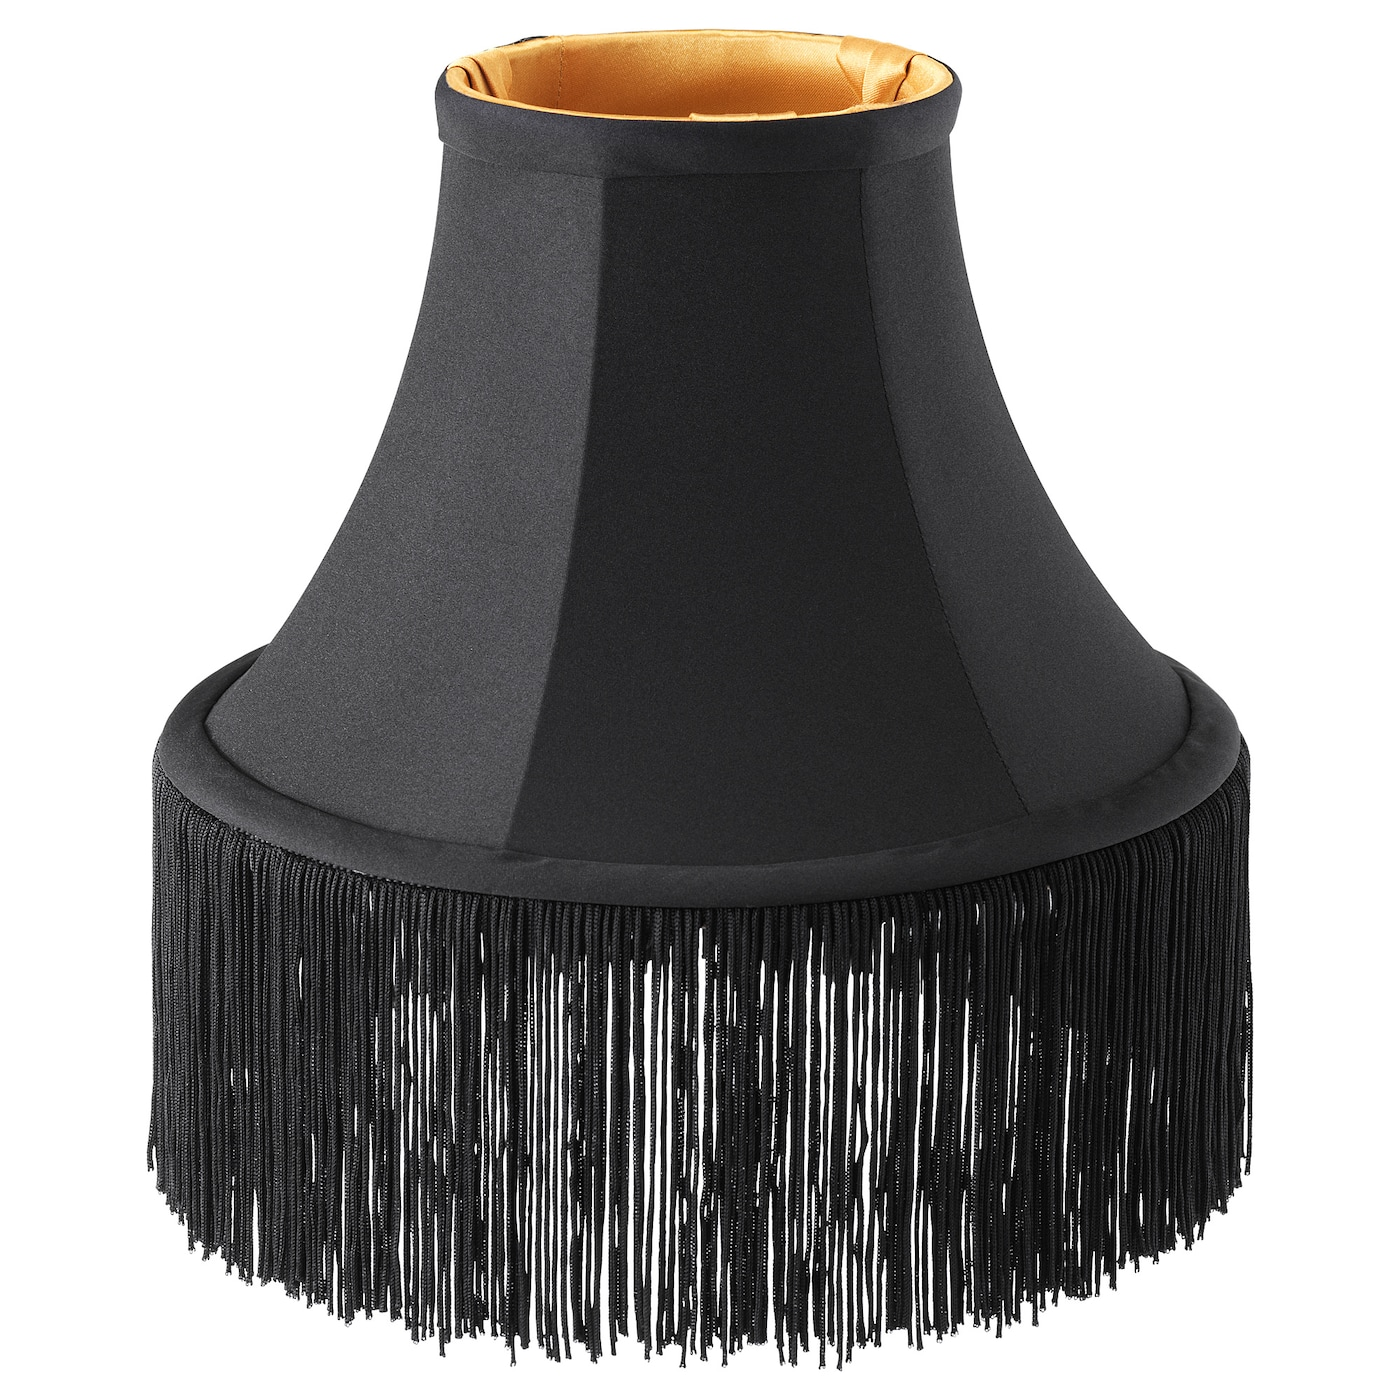 IKEA OMEDELBAR pendant lamp shade The textile shade provides a diffused and decorative light.